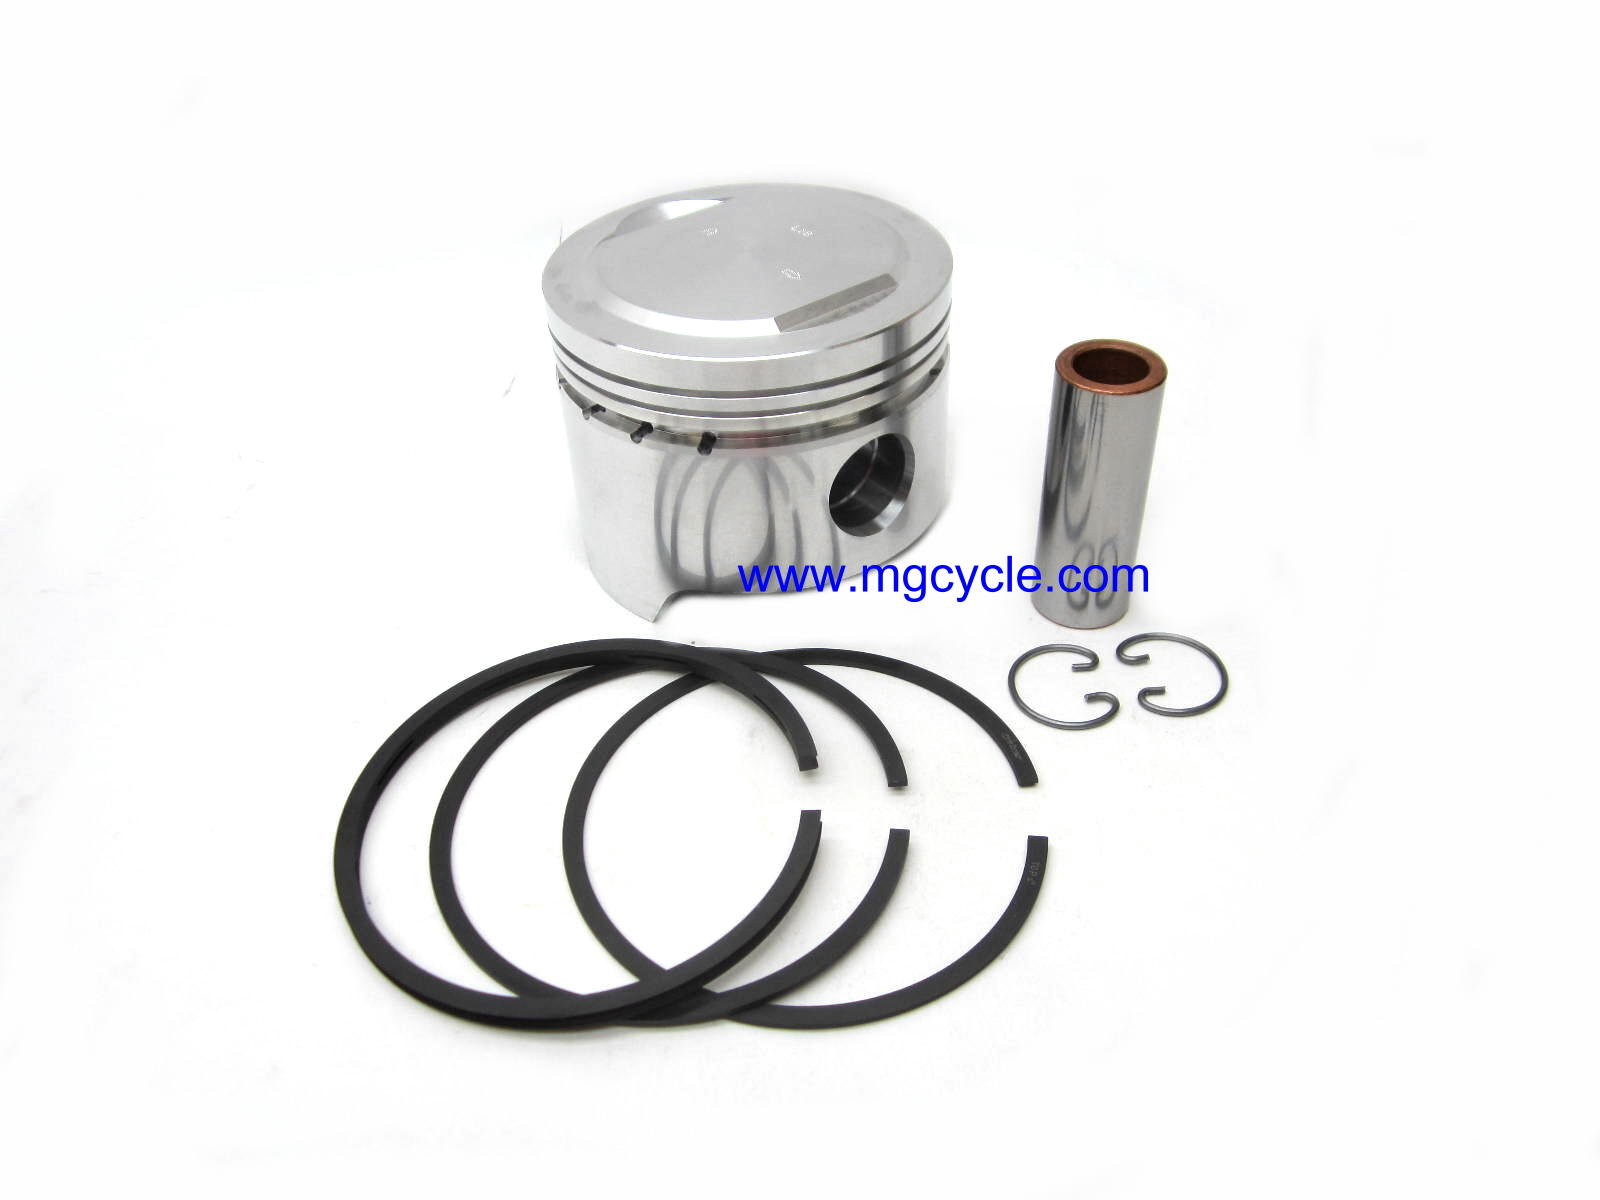 Piston (B), rings, wrist pin, circlips, 88mm, Convert, G5, Cal2